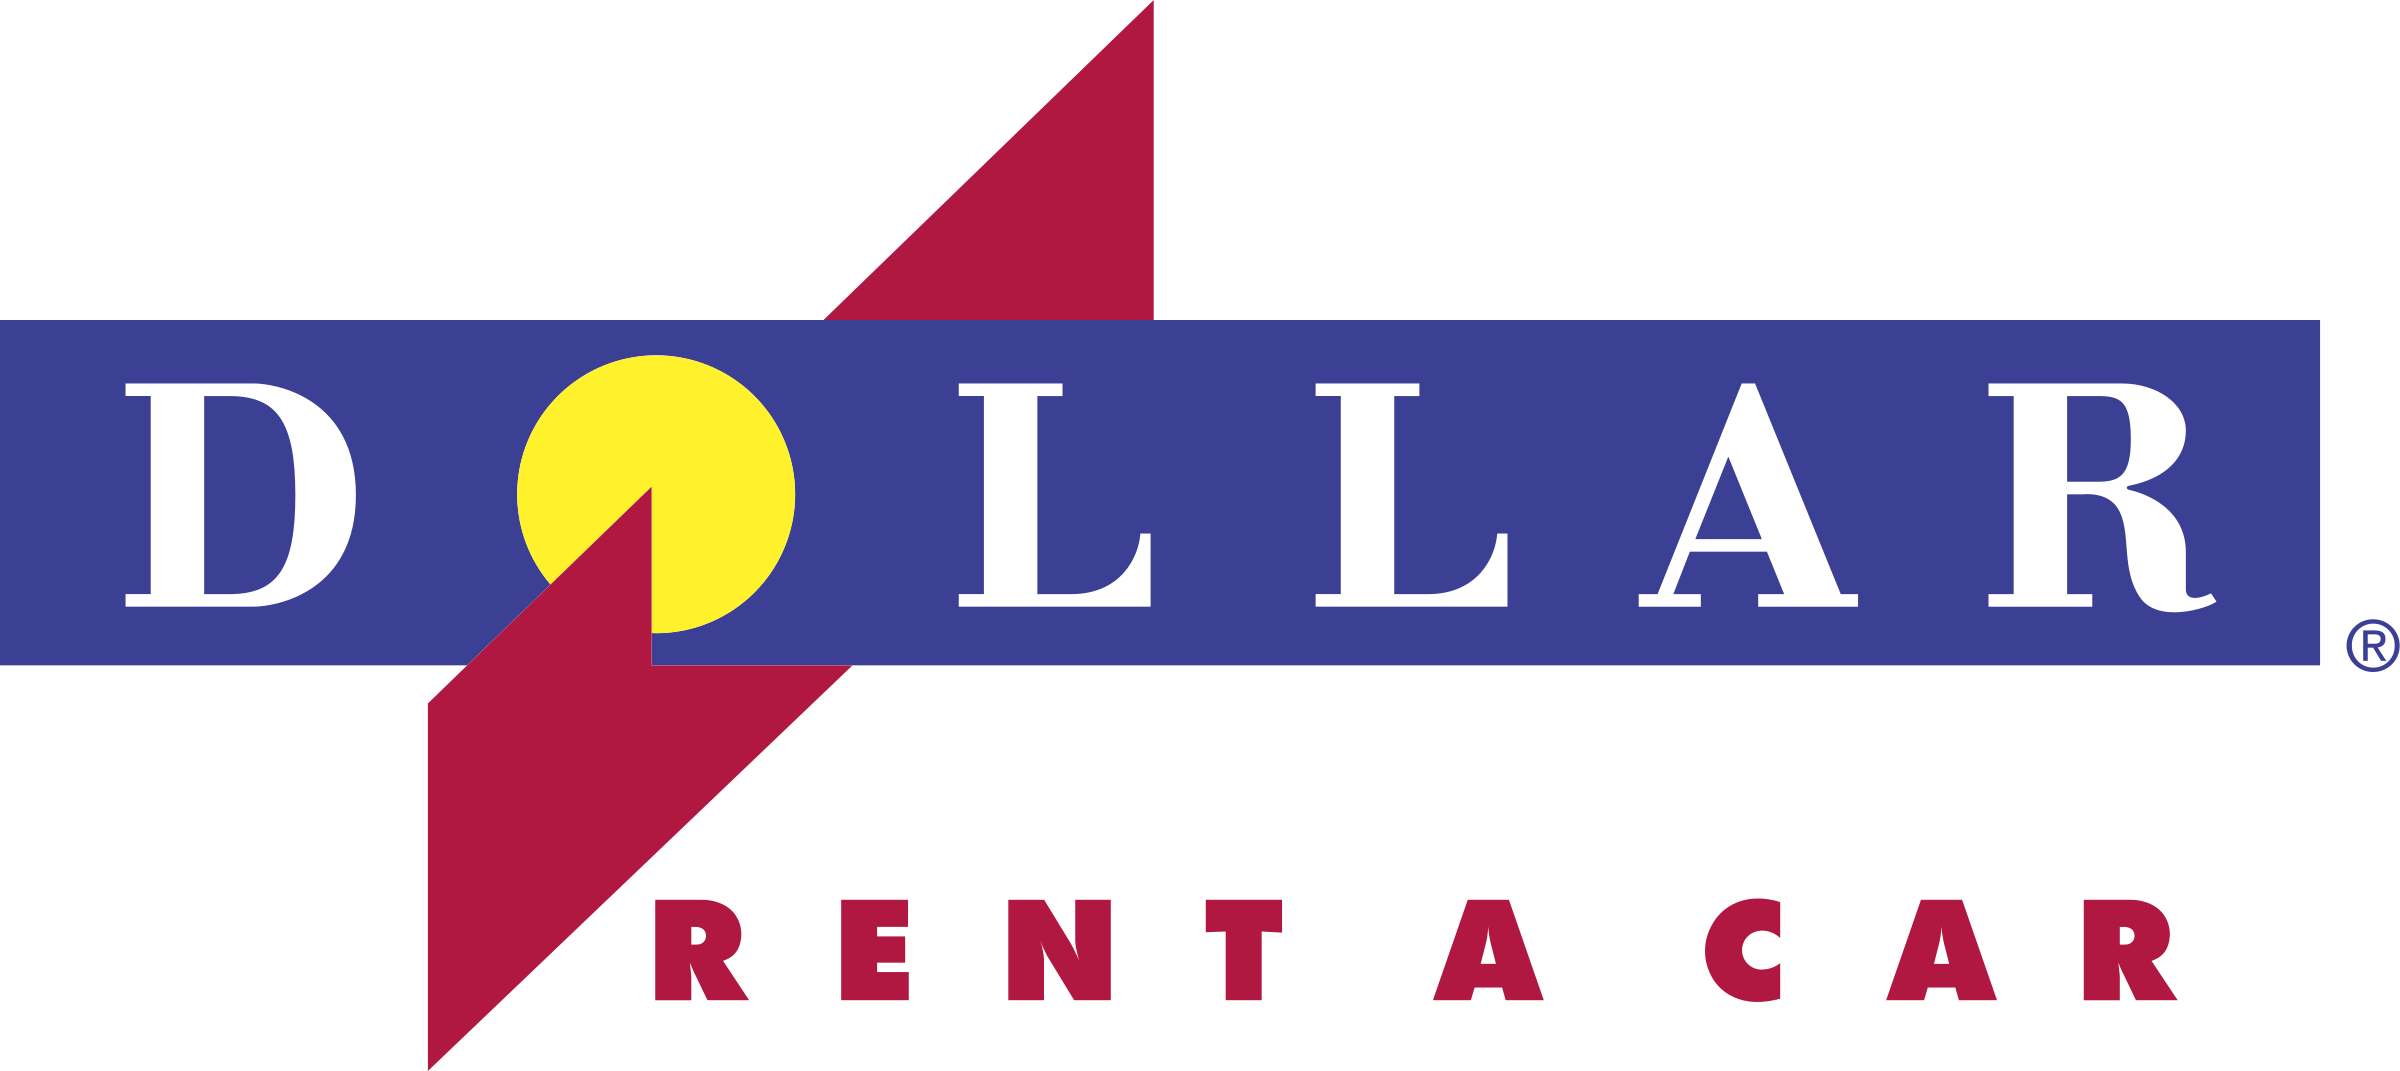 Dollar Rent-a-Car, Inc. cashback offer